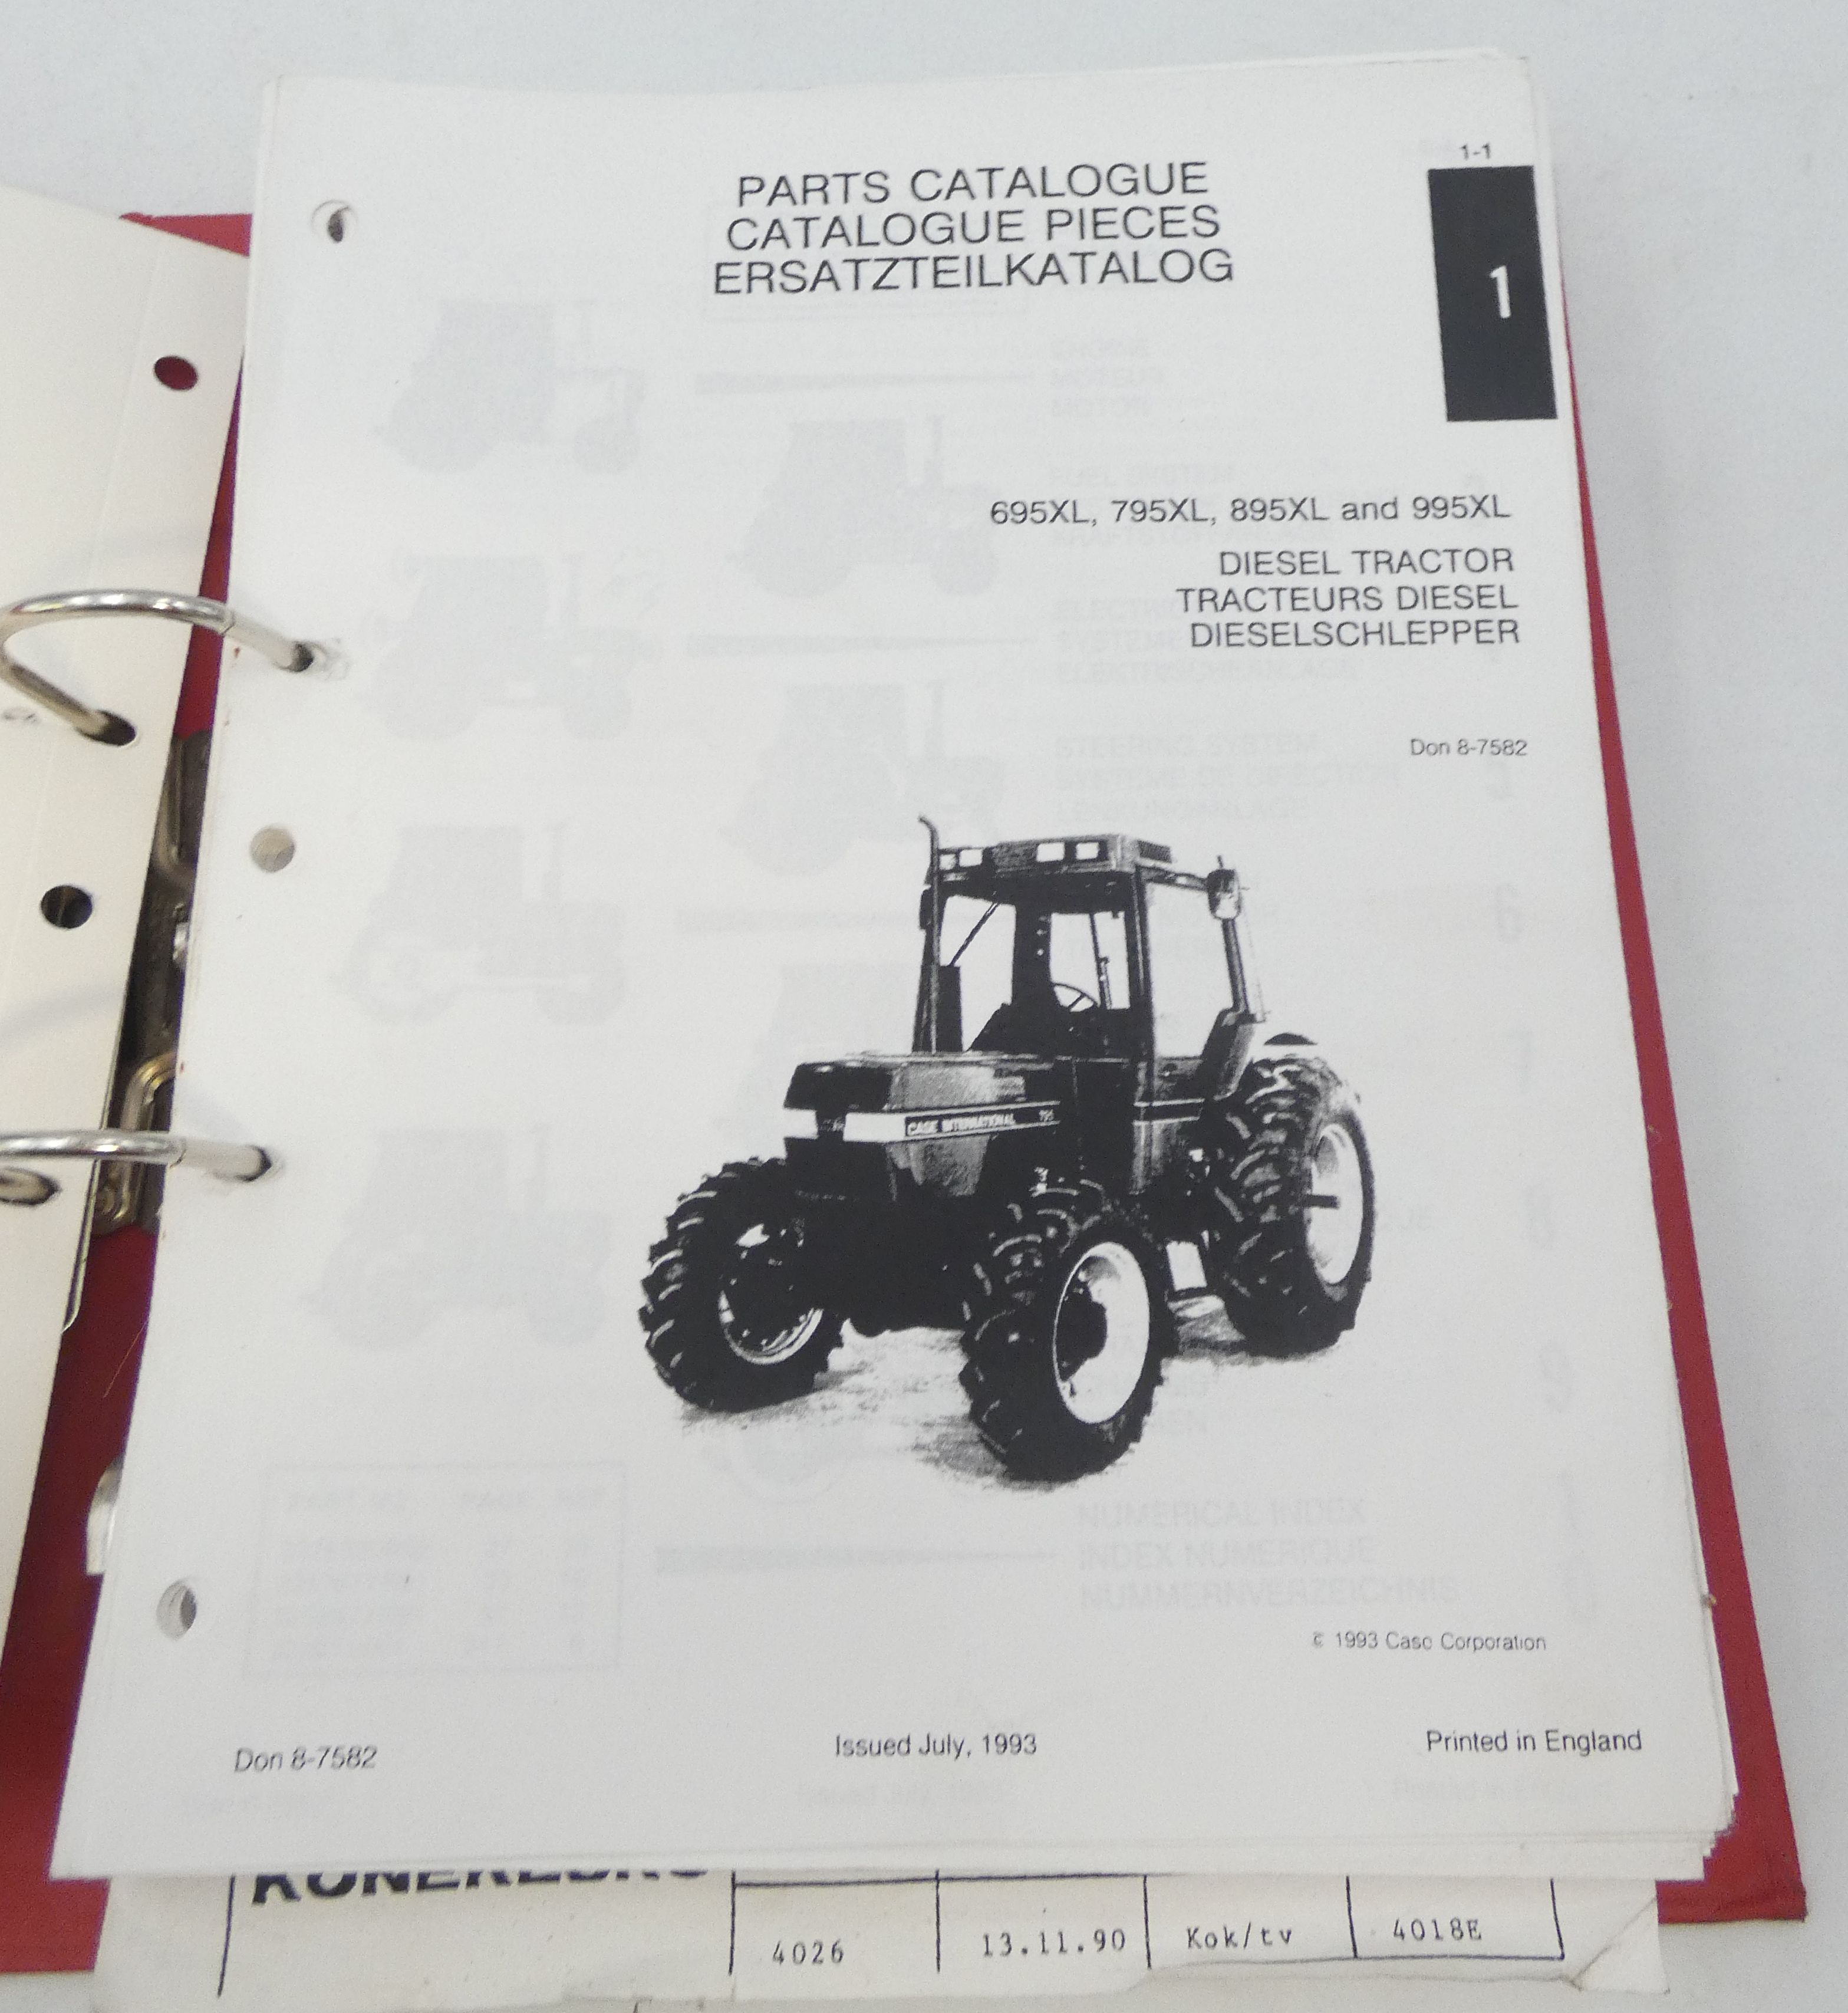 Case International 695XL, 795XL, 895XL and 995XL diesel tractor parts catalogue